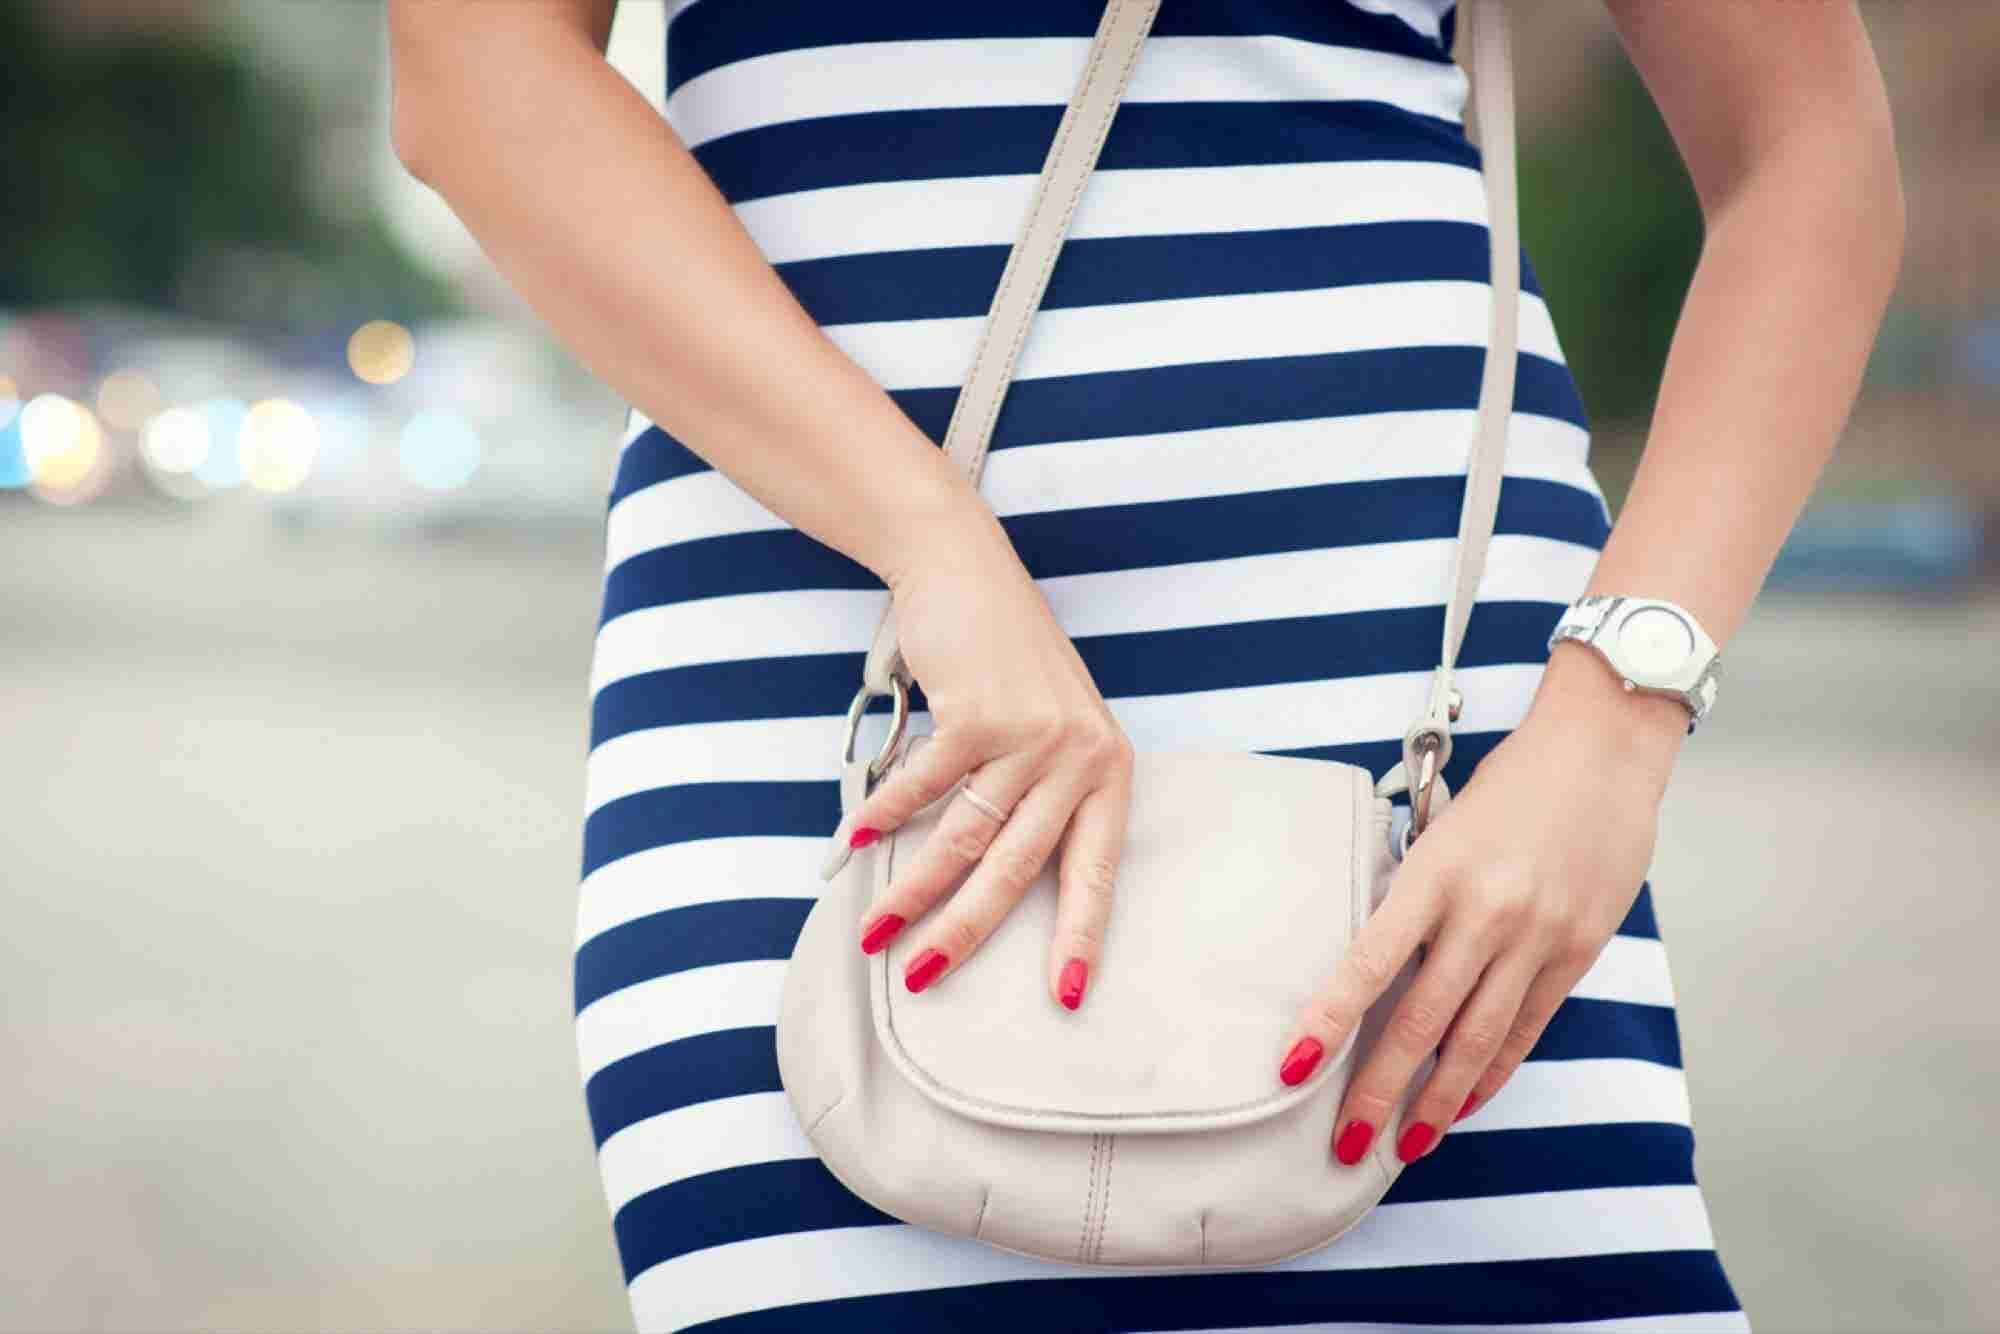 Power of the Purse: Consumer Activism Emerges As the New Feminist Brand